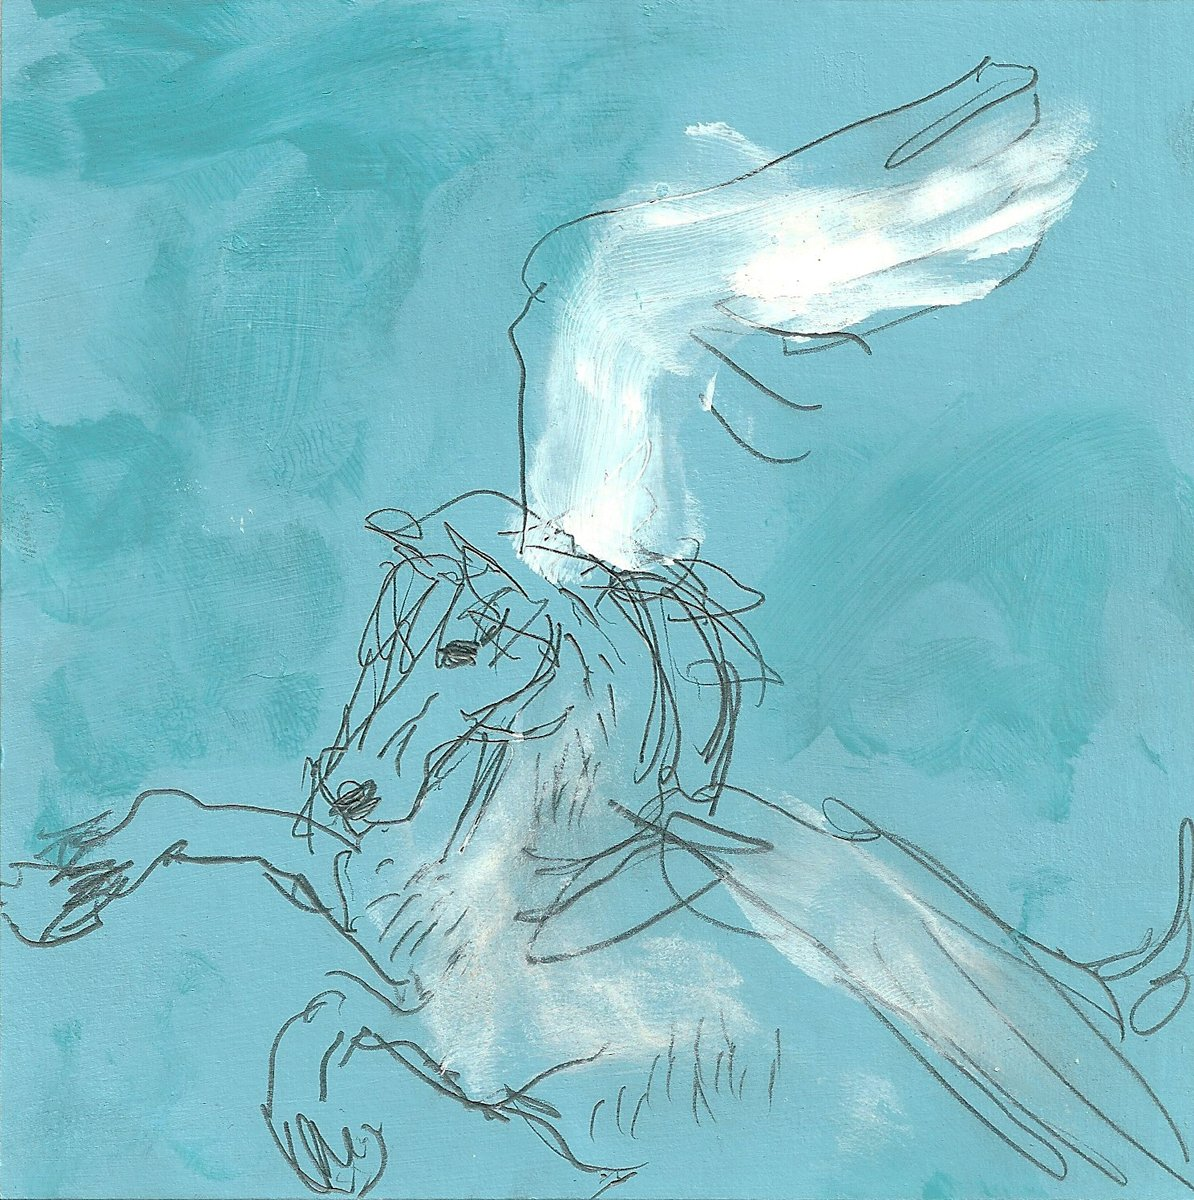 A pencil and painted drawing of a winged horse on a turquoise background.